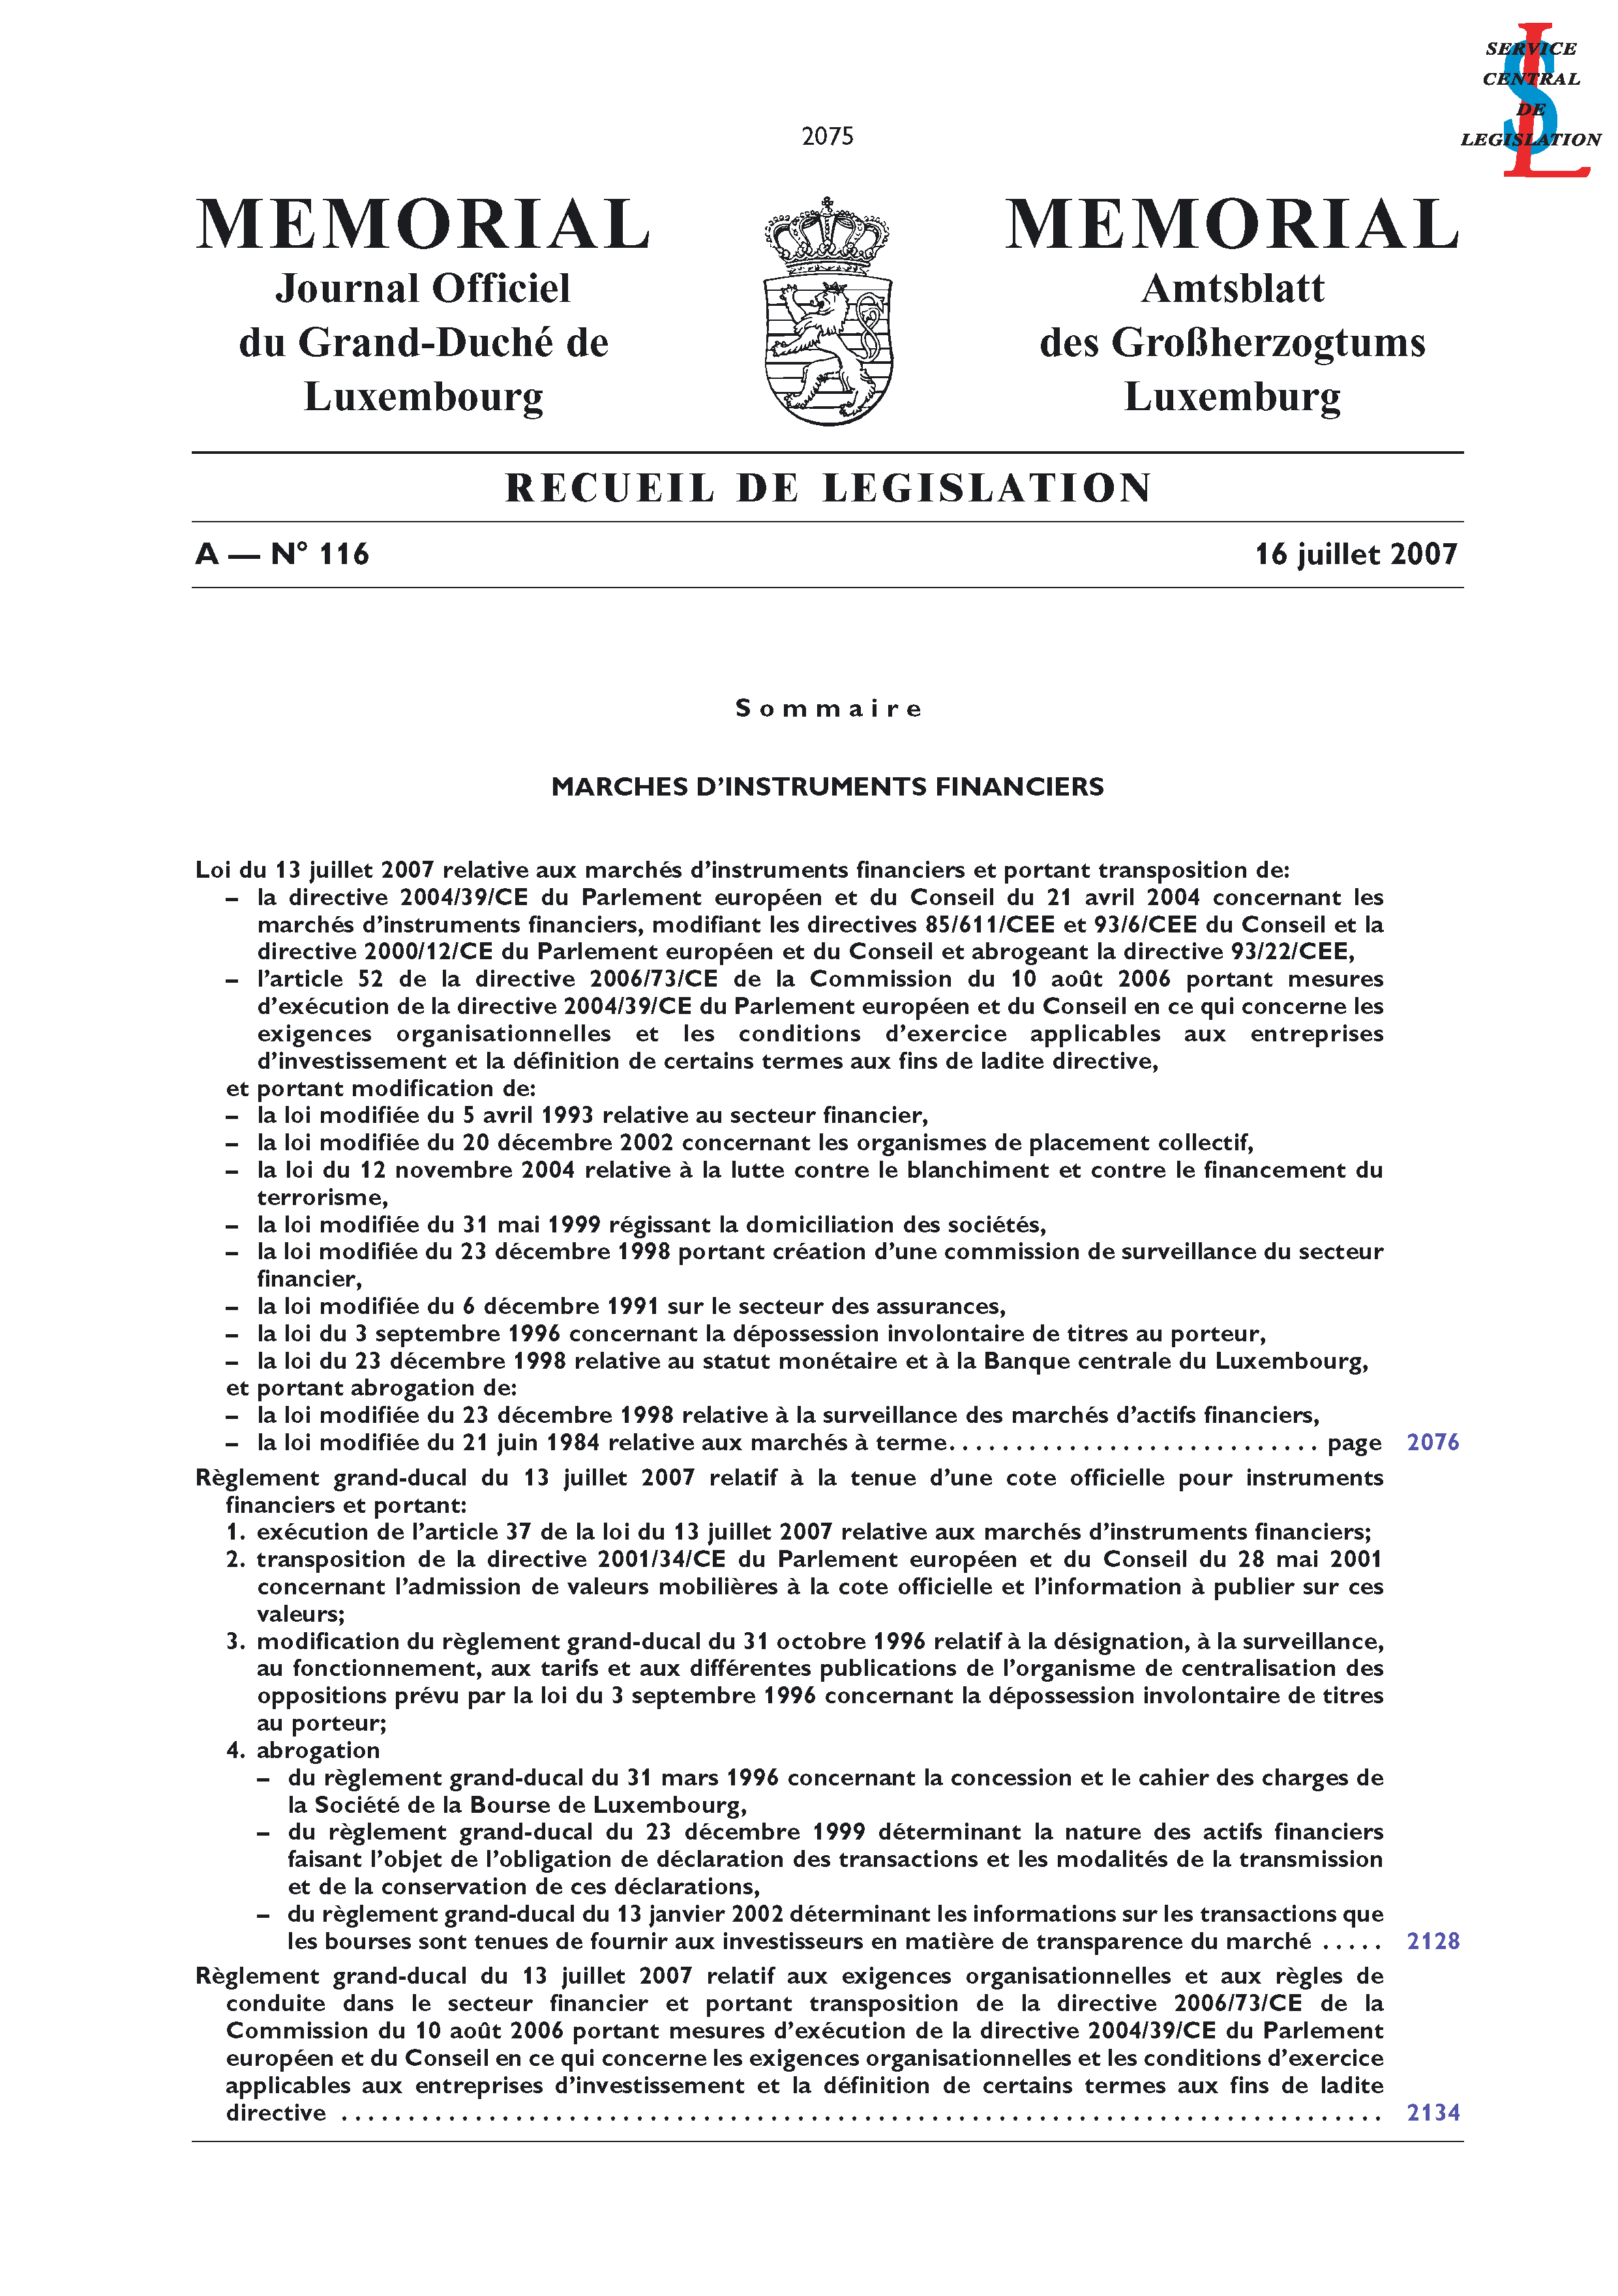 legislation-STOPS-GD_regulation_13july2007.png